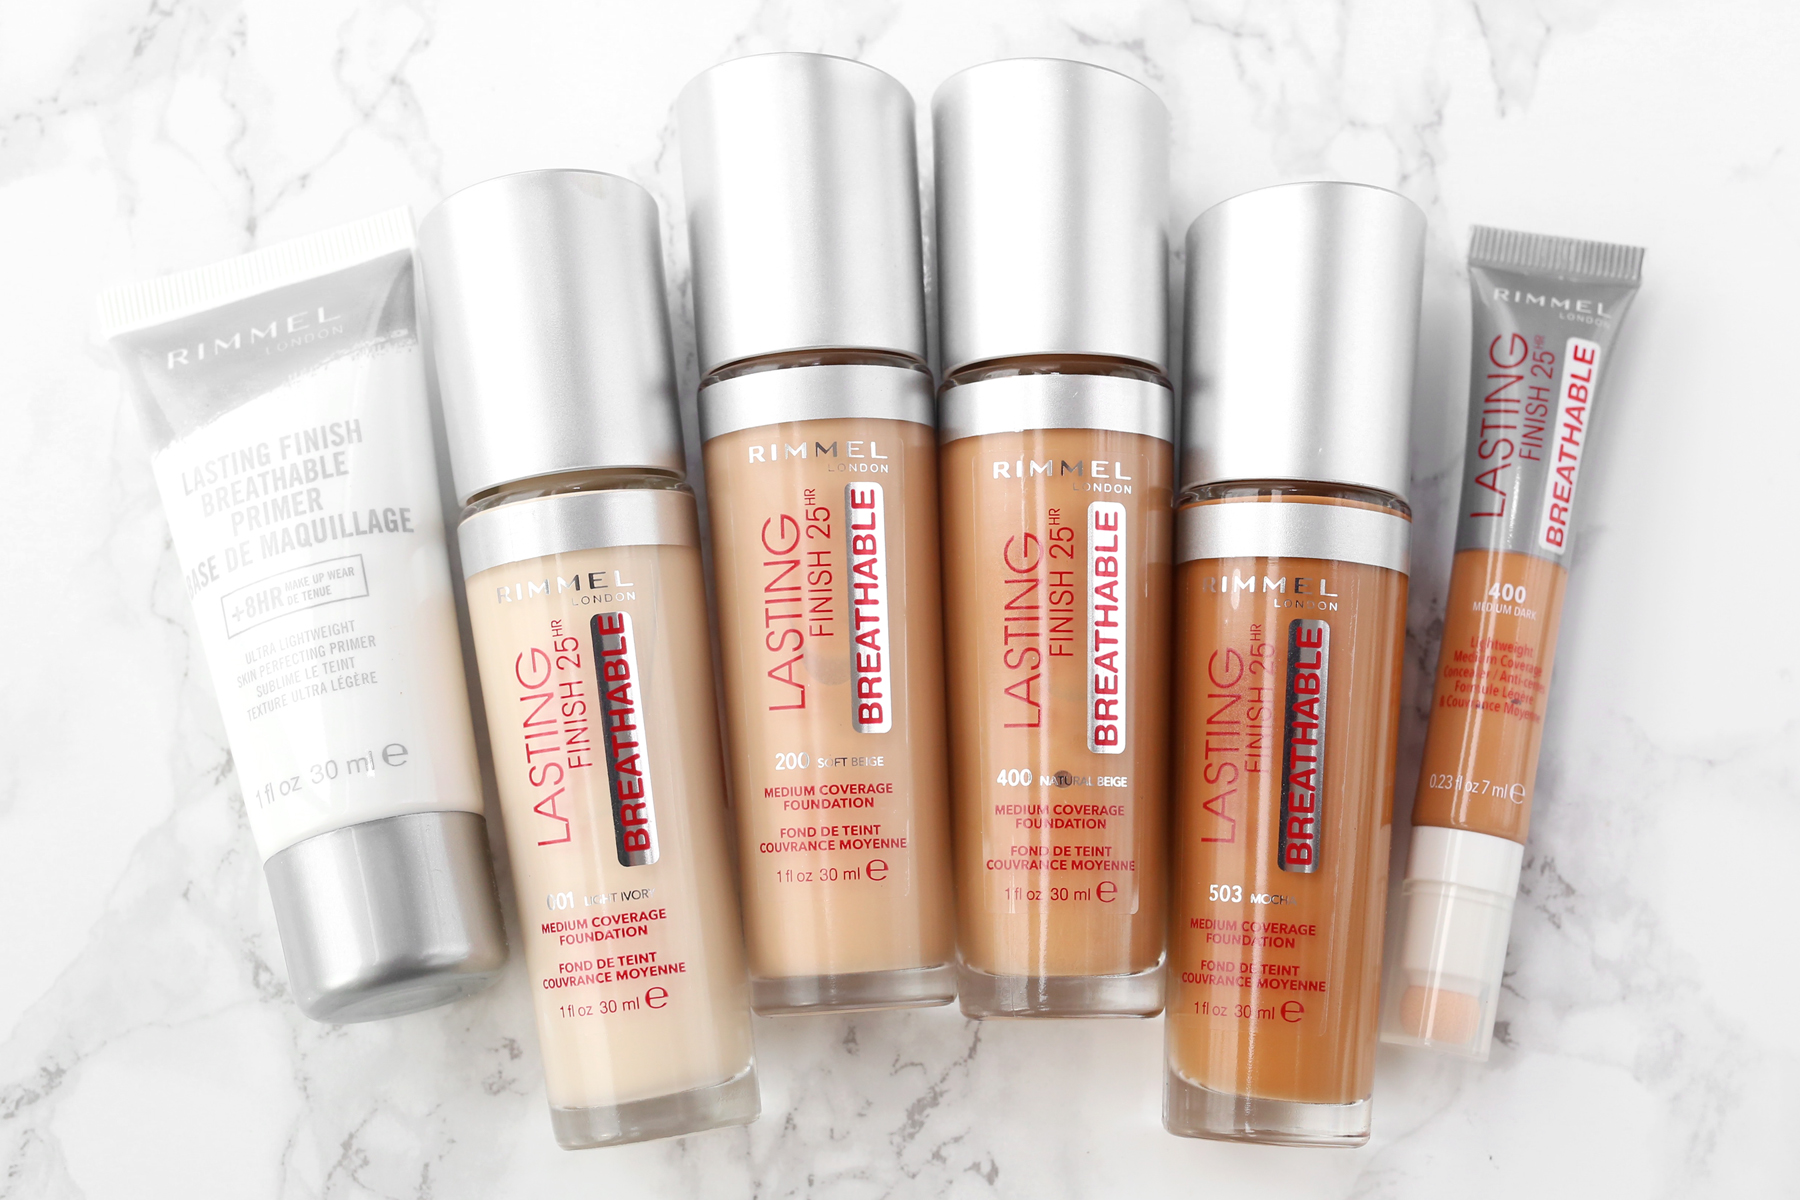 Review- Rimmel's Lasting Finish Breathable Collection - 25 hour wear foundation, concealer, and breathable primer - woahstyle.com - toronto beauty blog by nathalie martin_7266.jpg